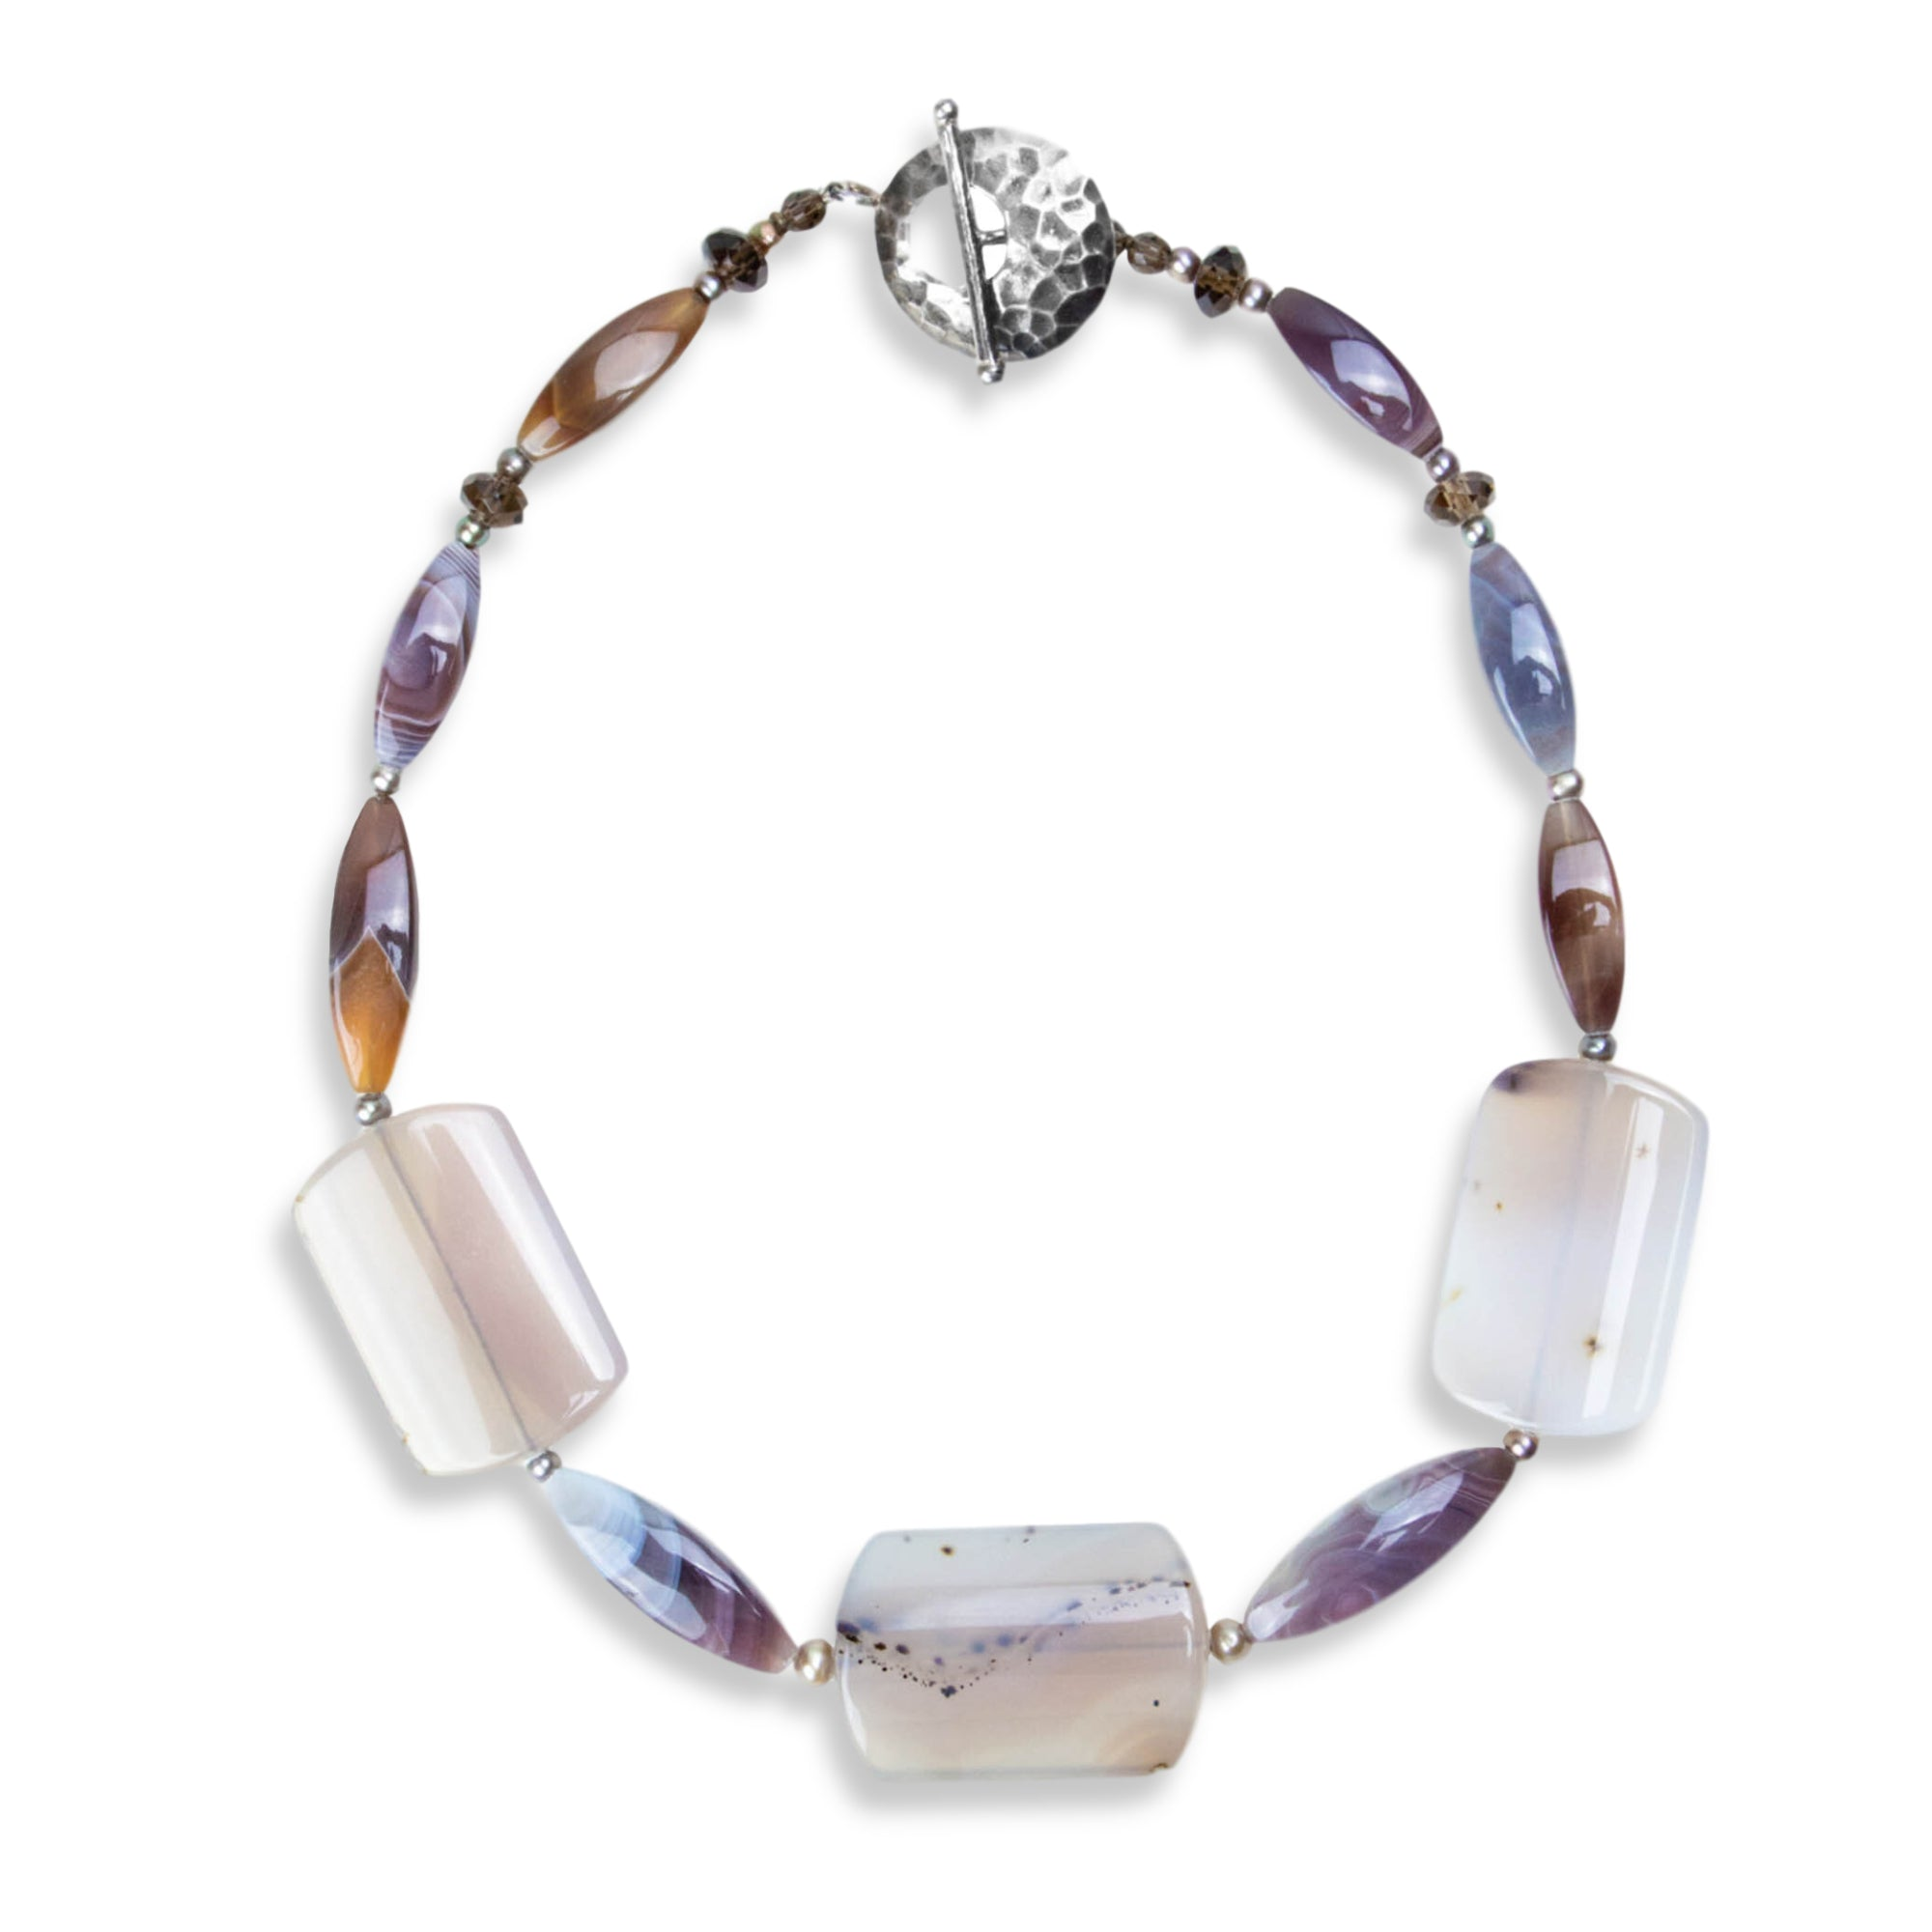 Chalcedony and Botswana Agate Necklace